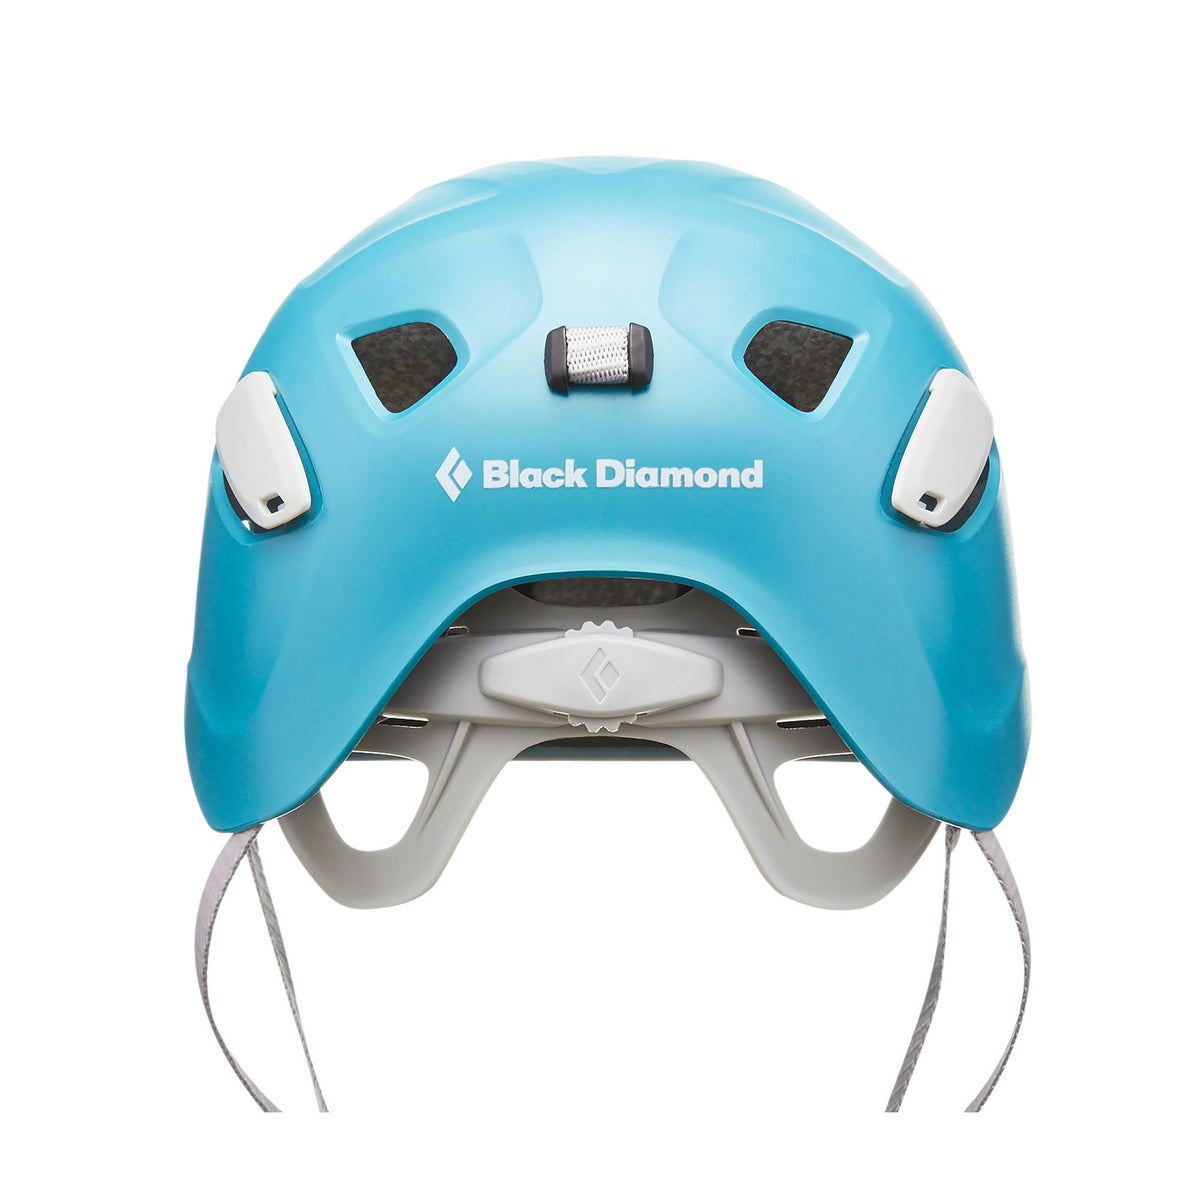 Black Diamond Half Dome Womens helmet, rear view showing adjustment features